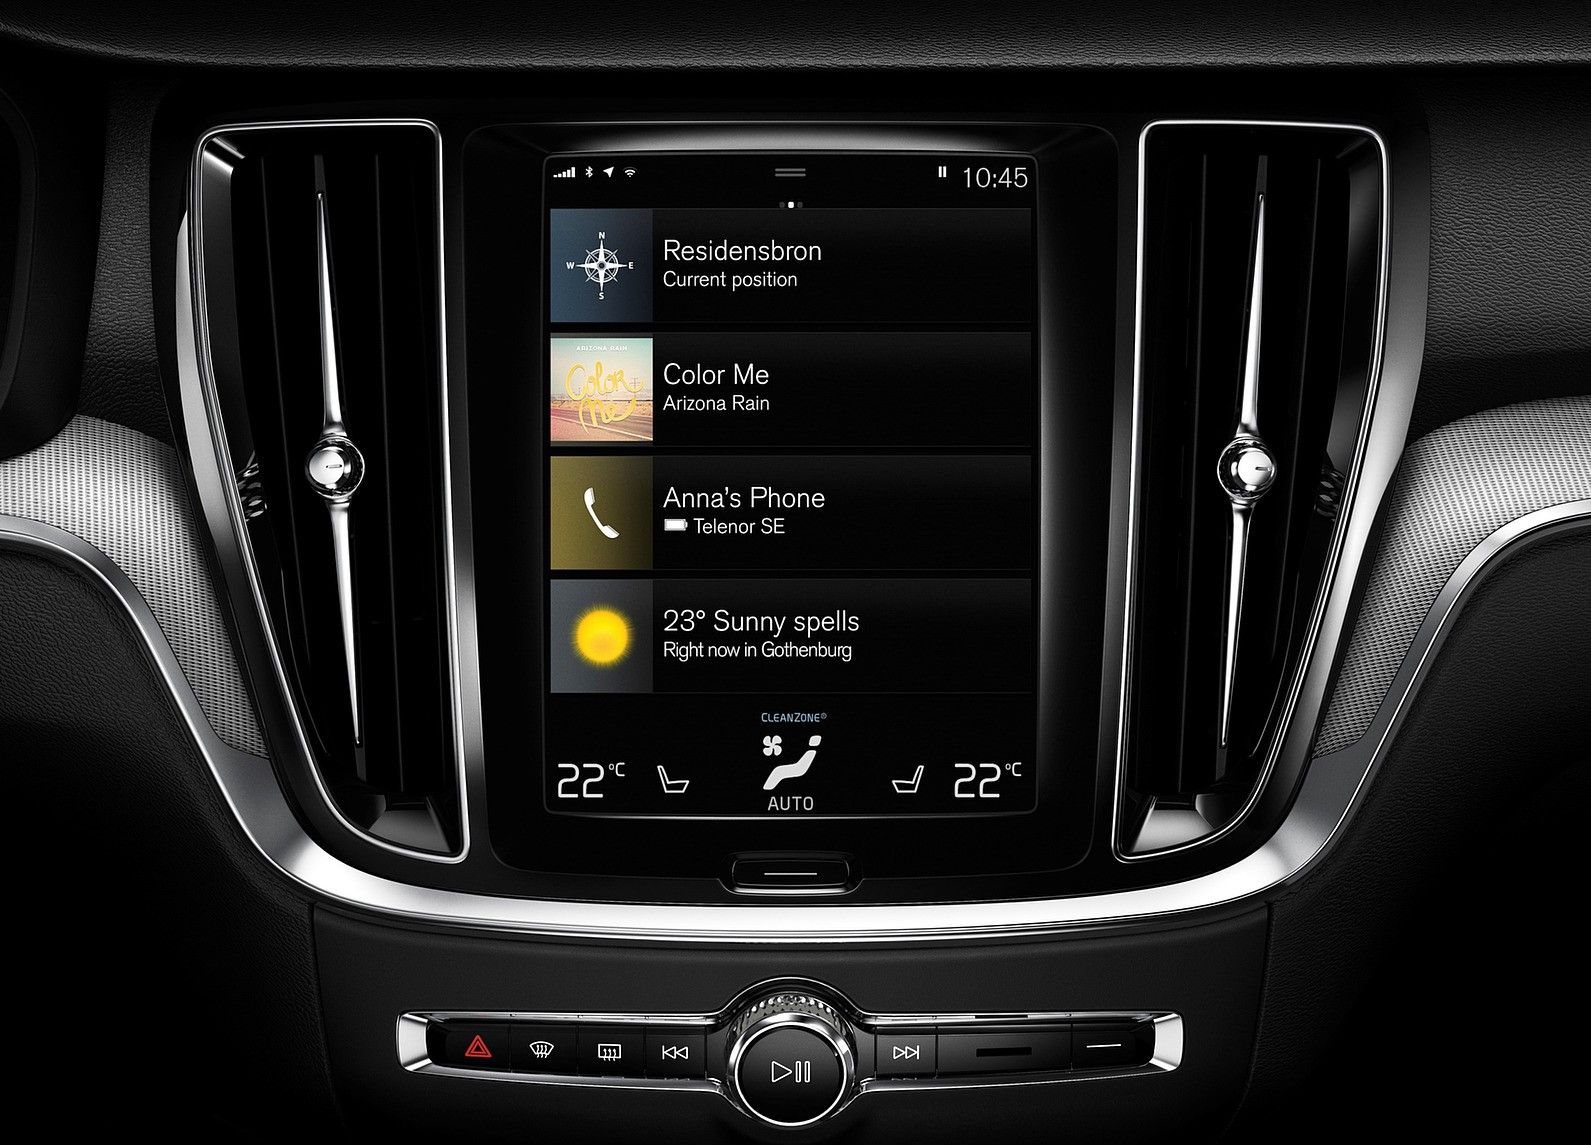 2021 Volvo S60 Infotainment System and Connectivity